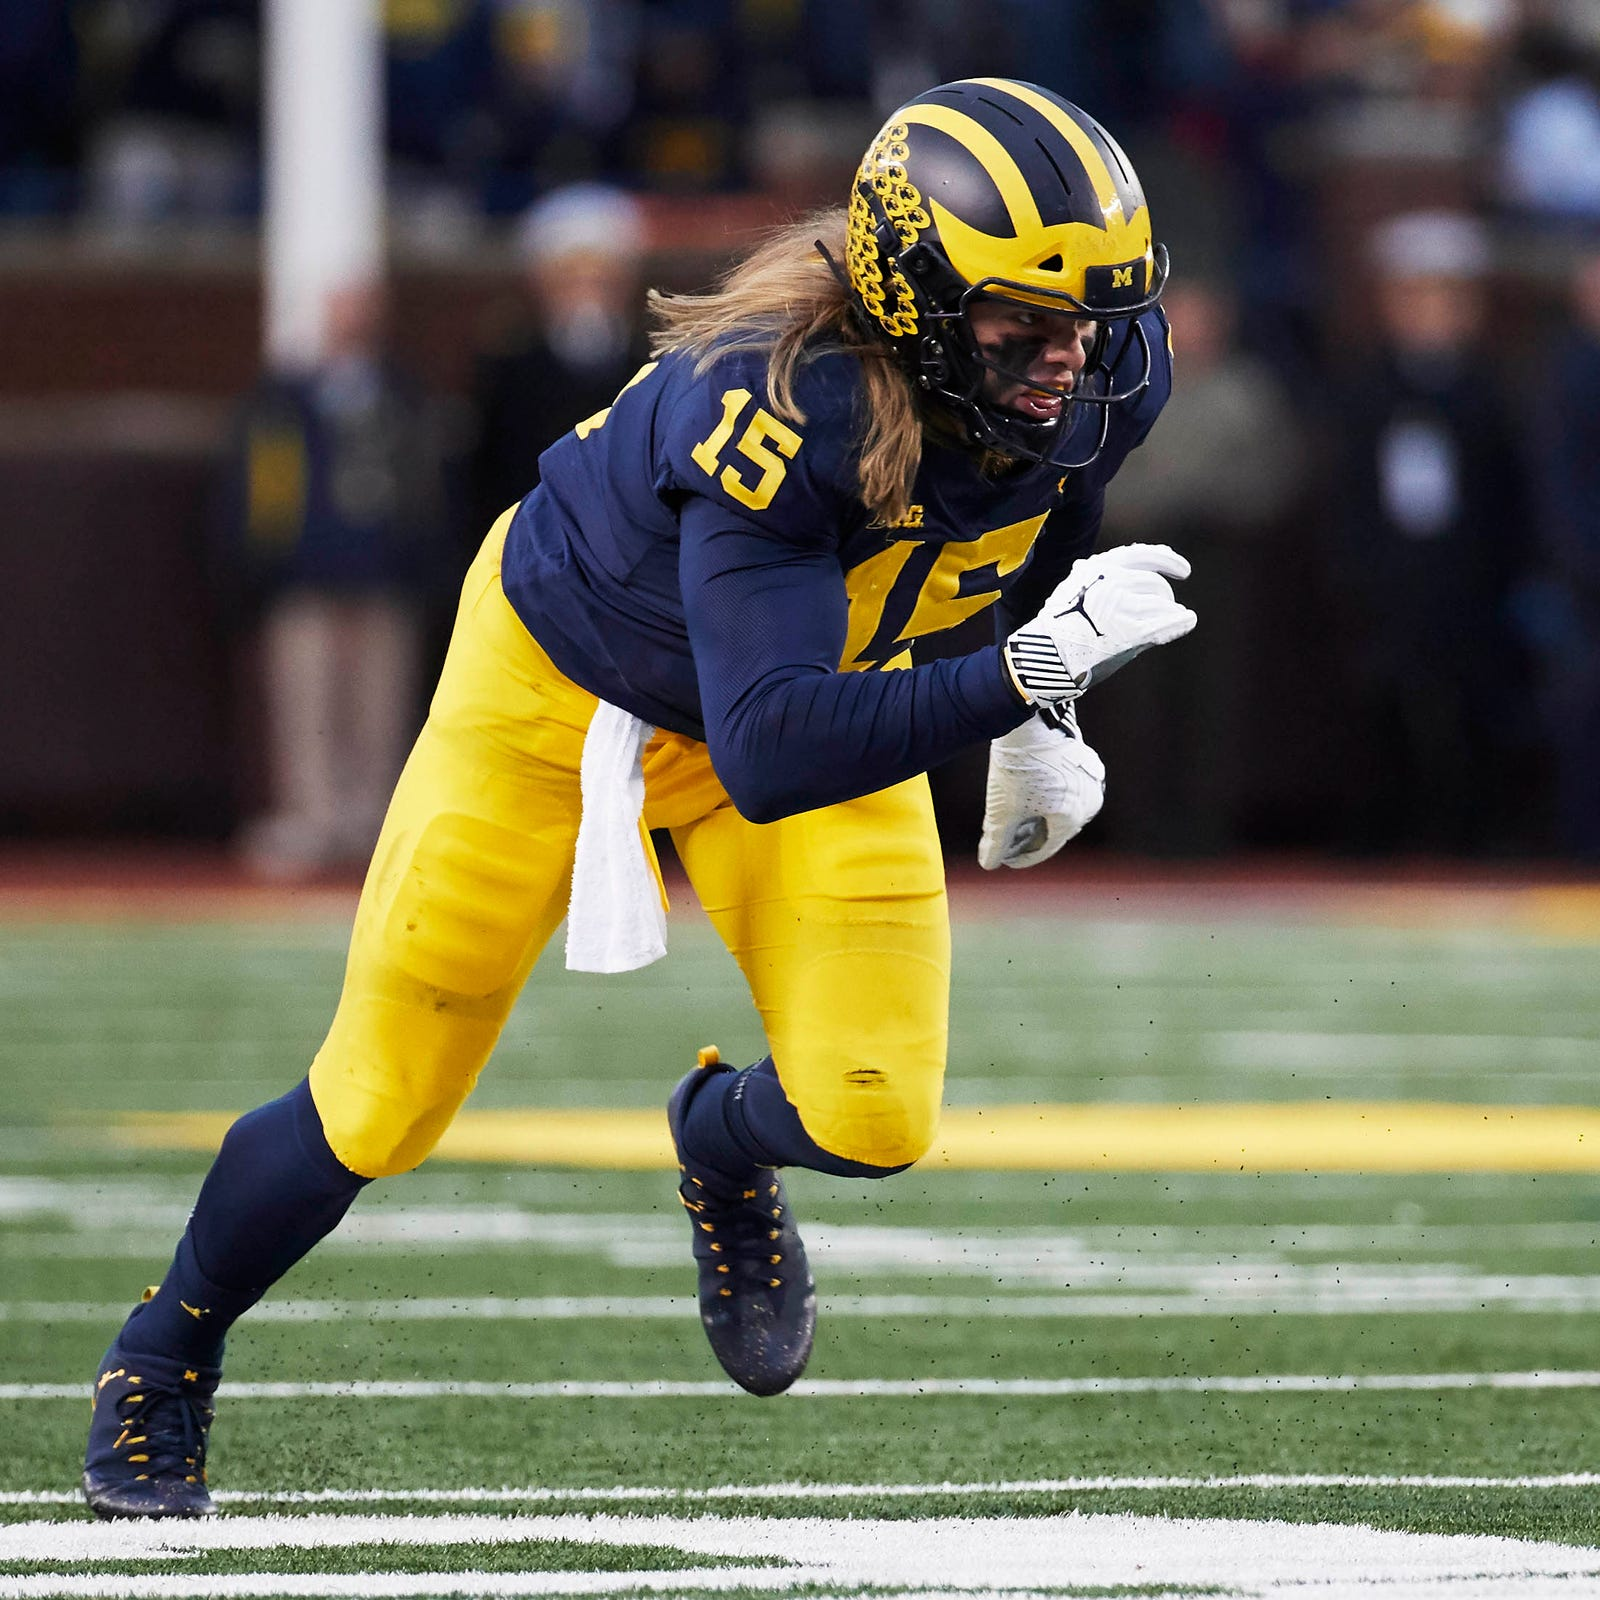 Michigan football star Chase Winovich leaves Indiana game with injury